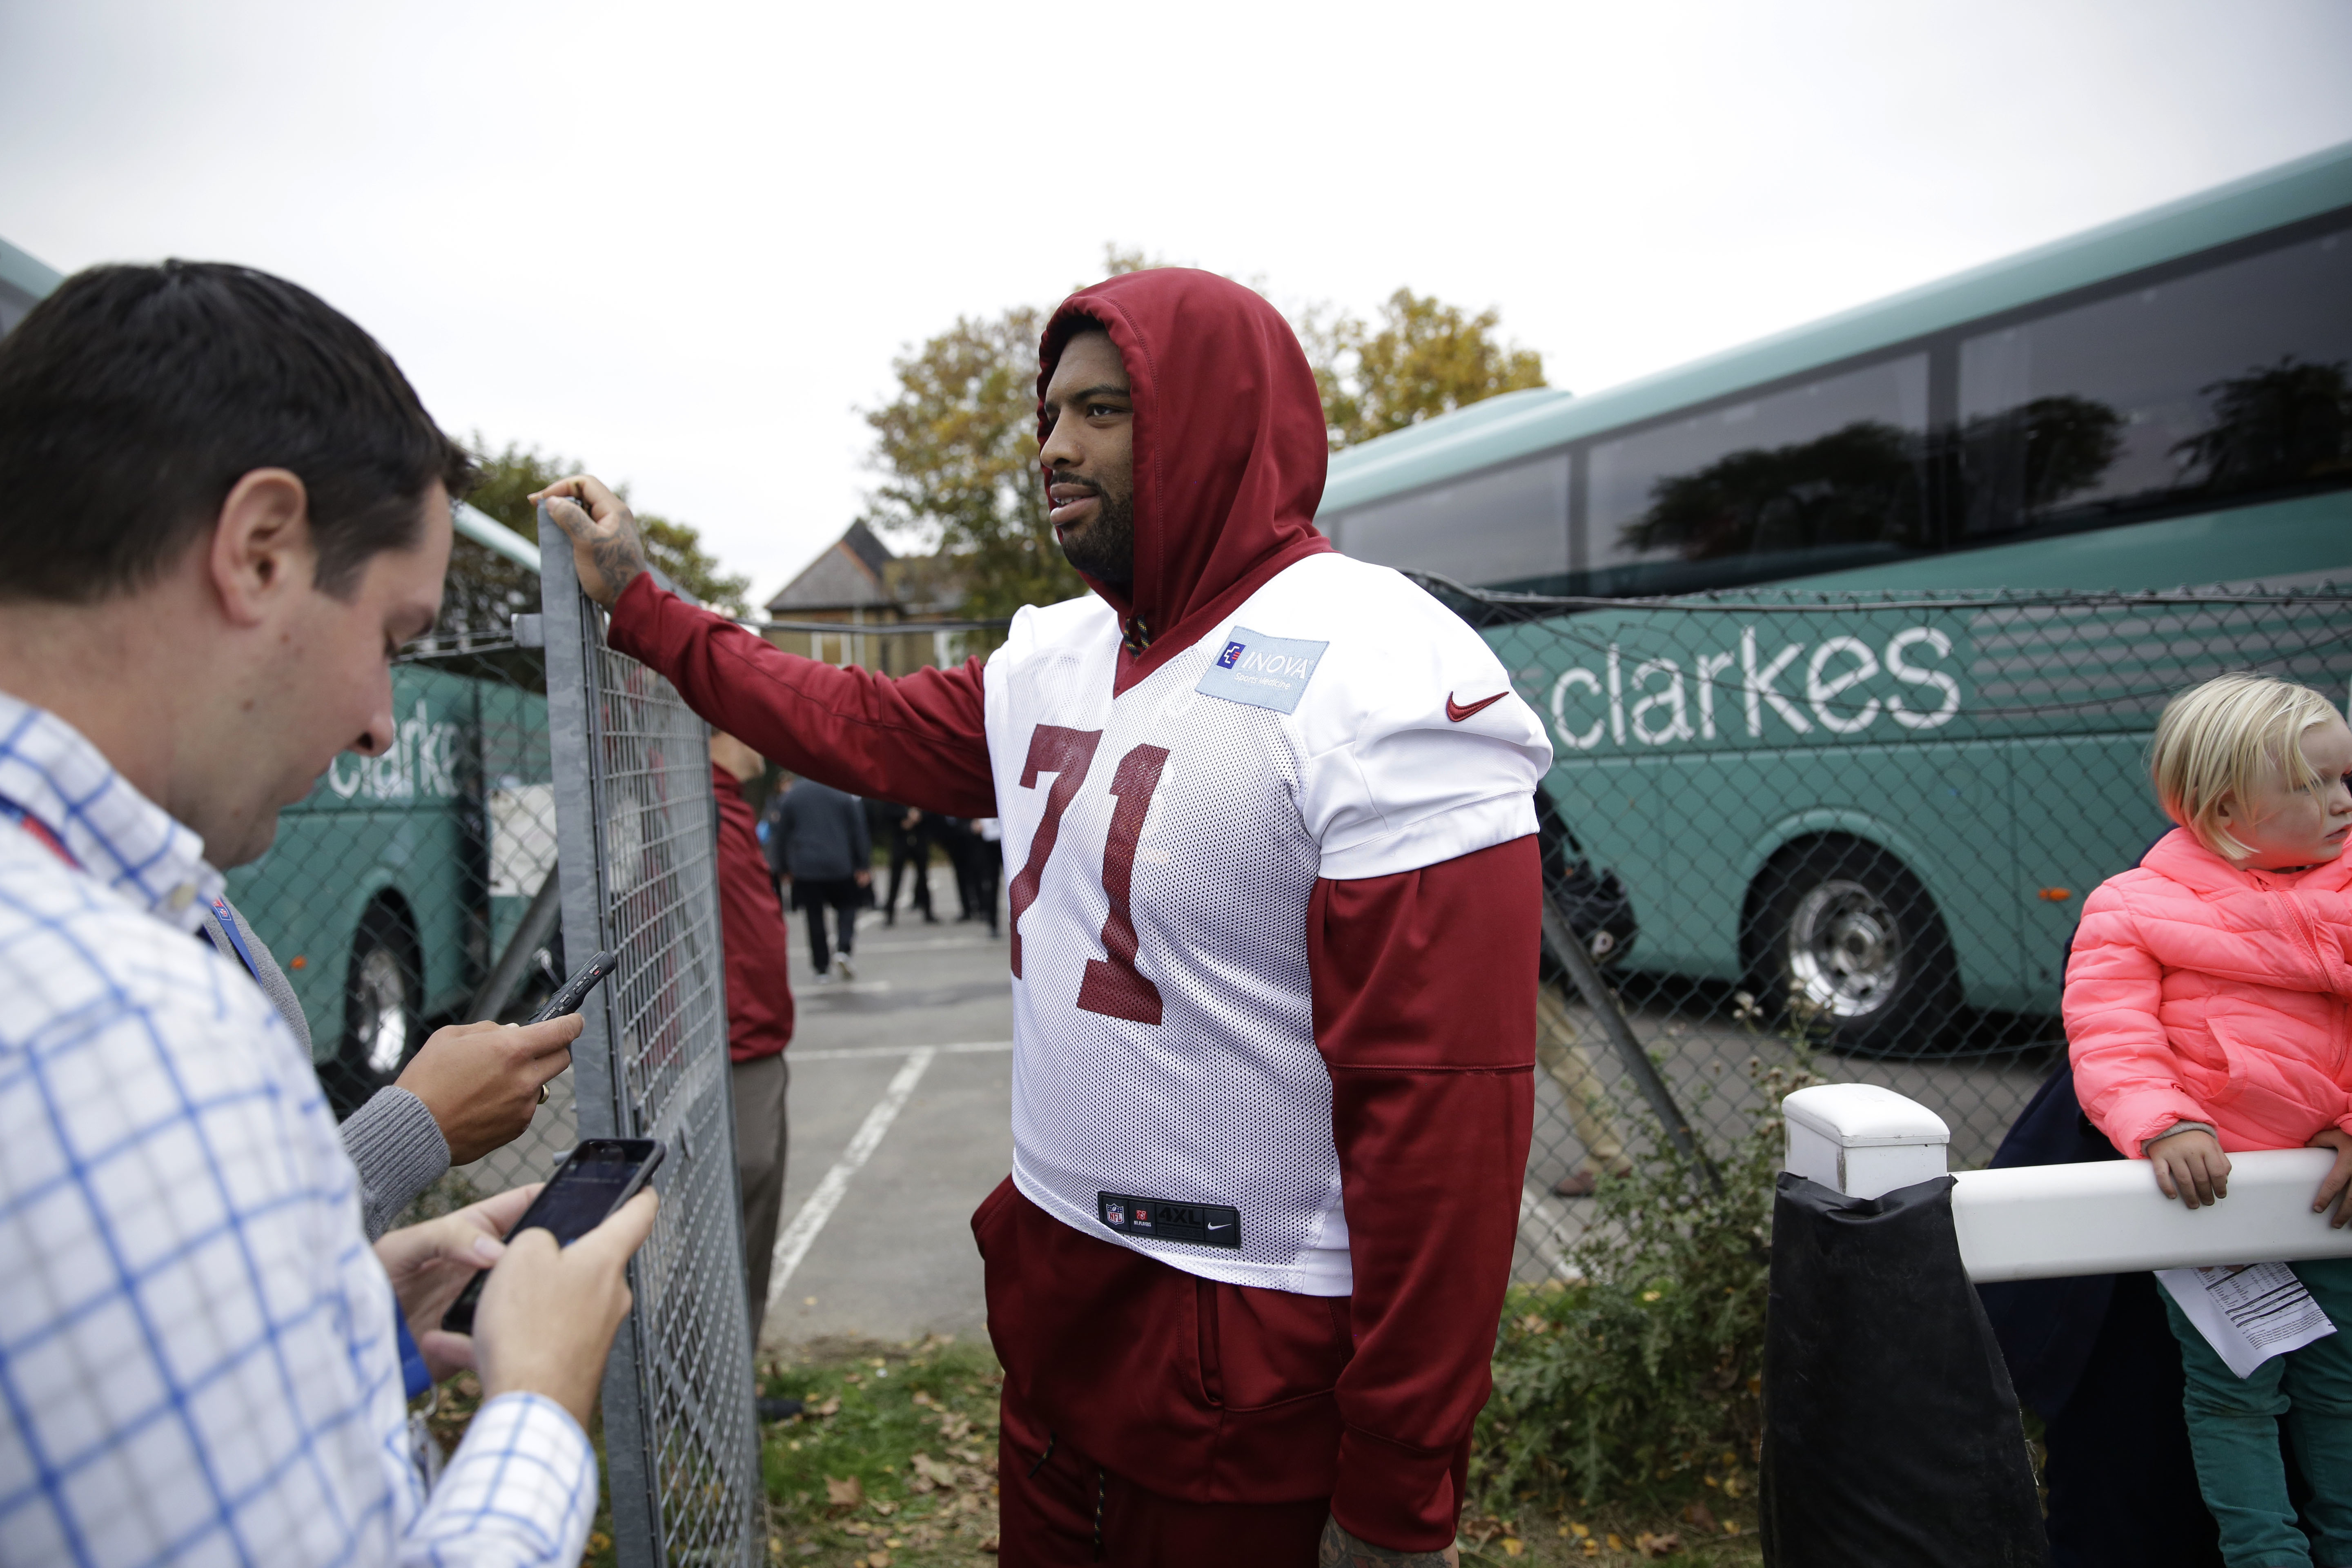 Washington Redskins' offensive tackle Trent Williams, 71, who is recovering from an injury, speaks to journalists after a training session at Wasps rugby union team training ground in west London, Friday, Oct. 28, 2016. The Washington Redskins are due to